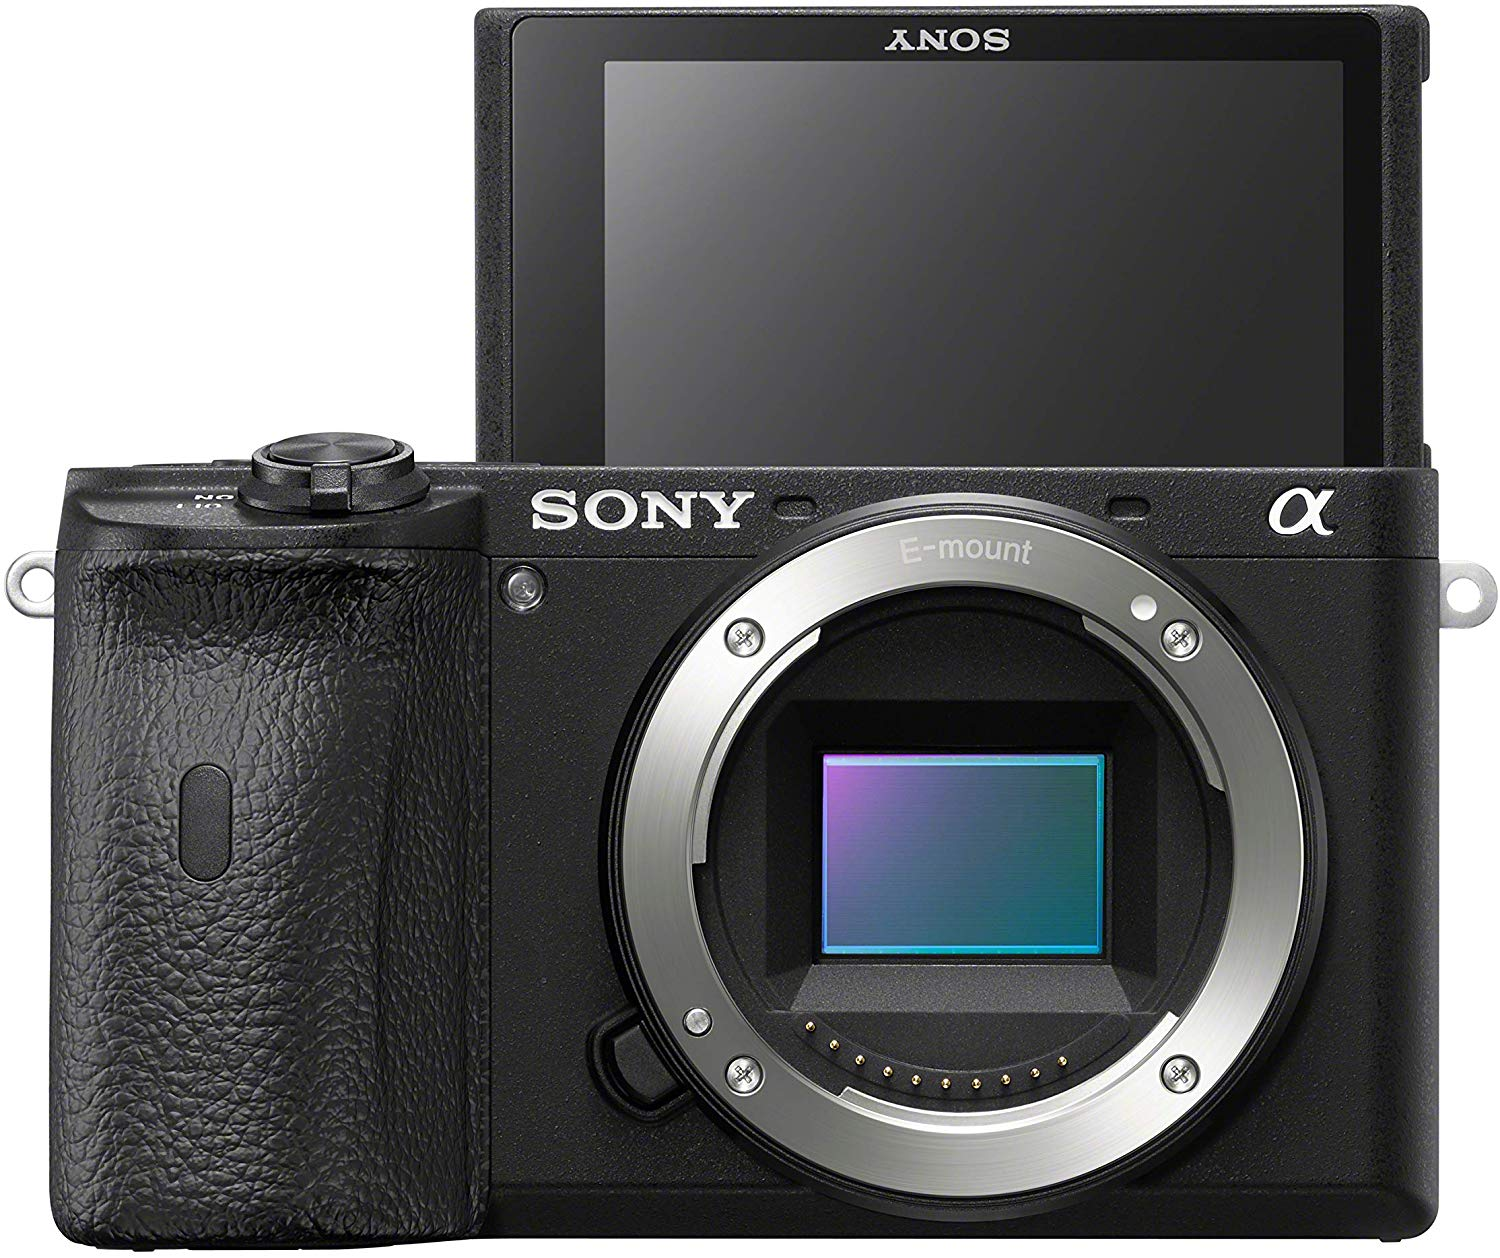 Sony a6500 vs a6600 Body Design 2 image